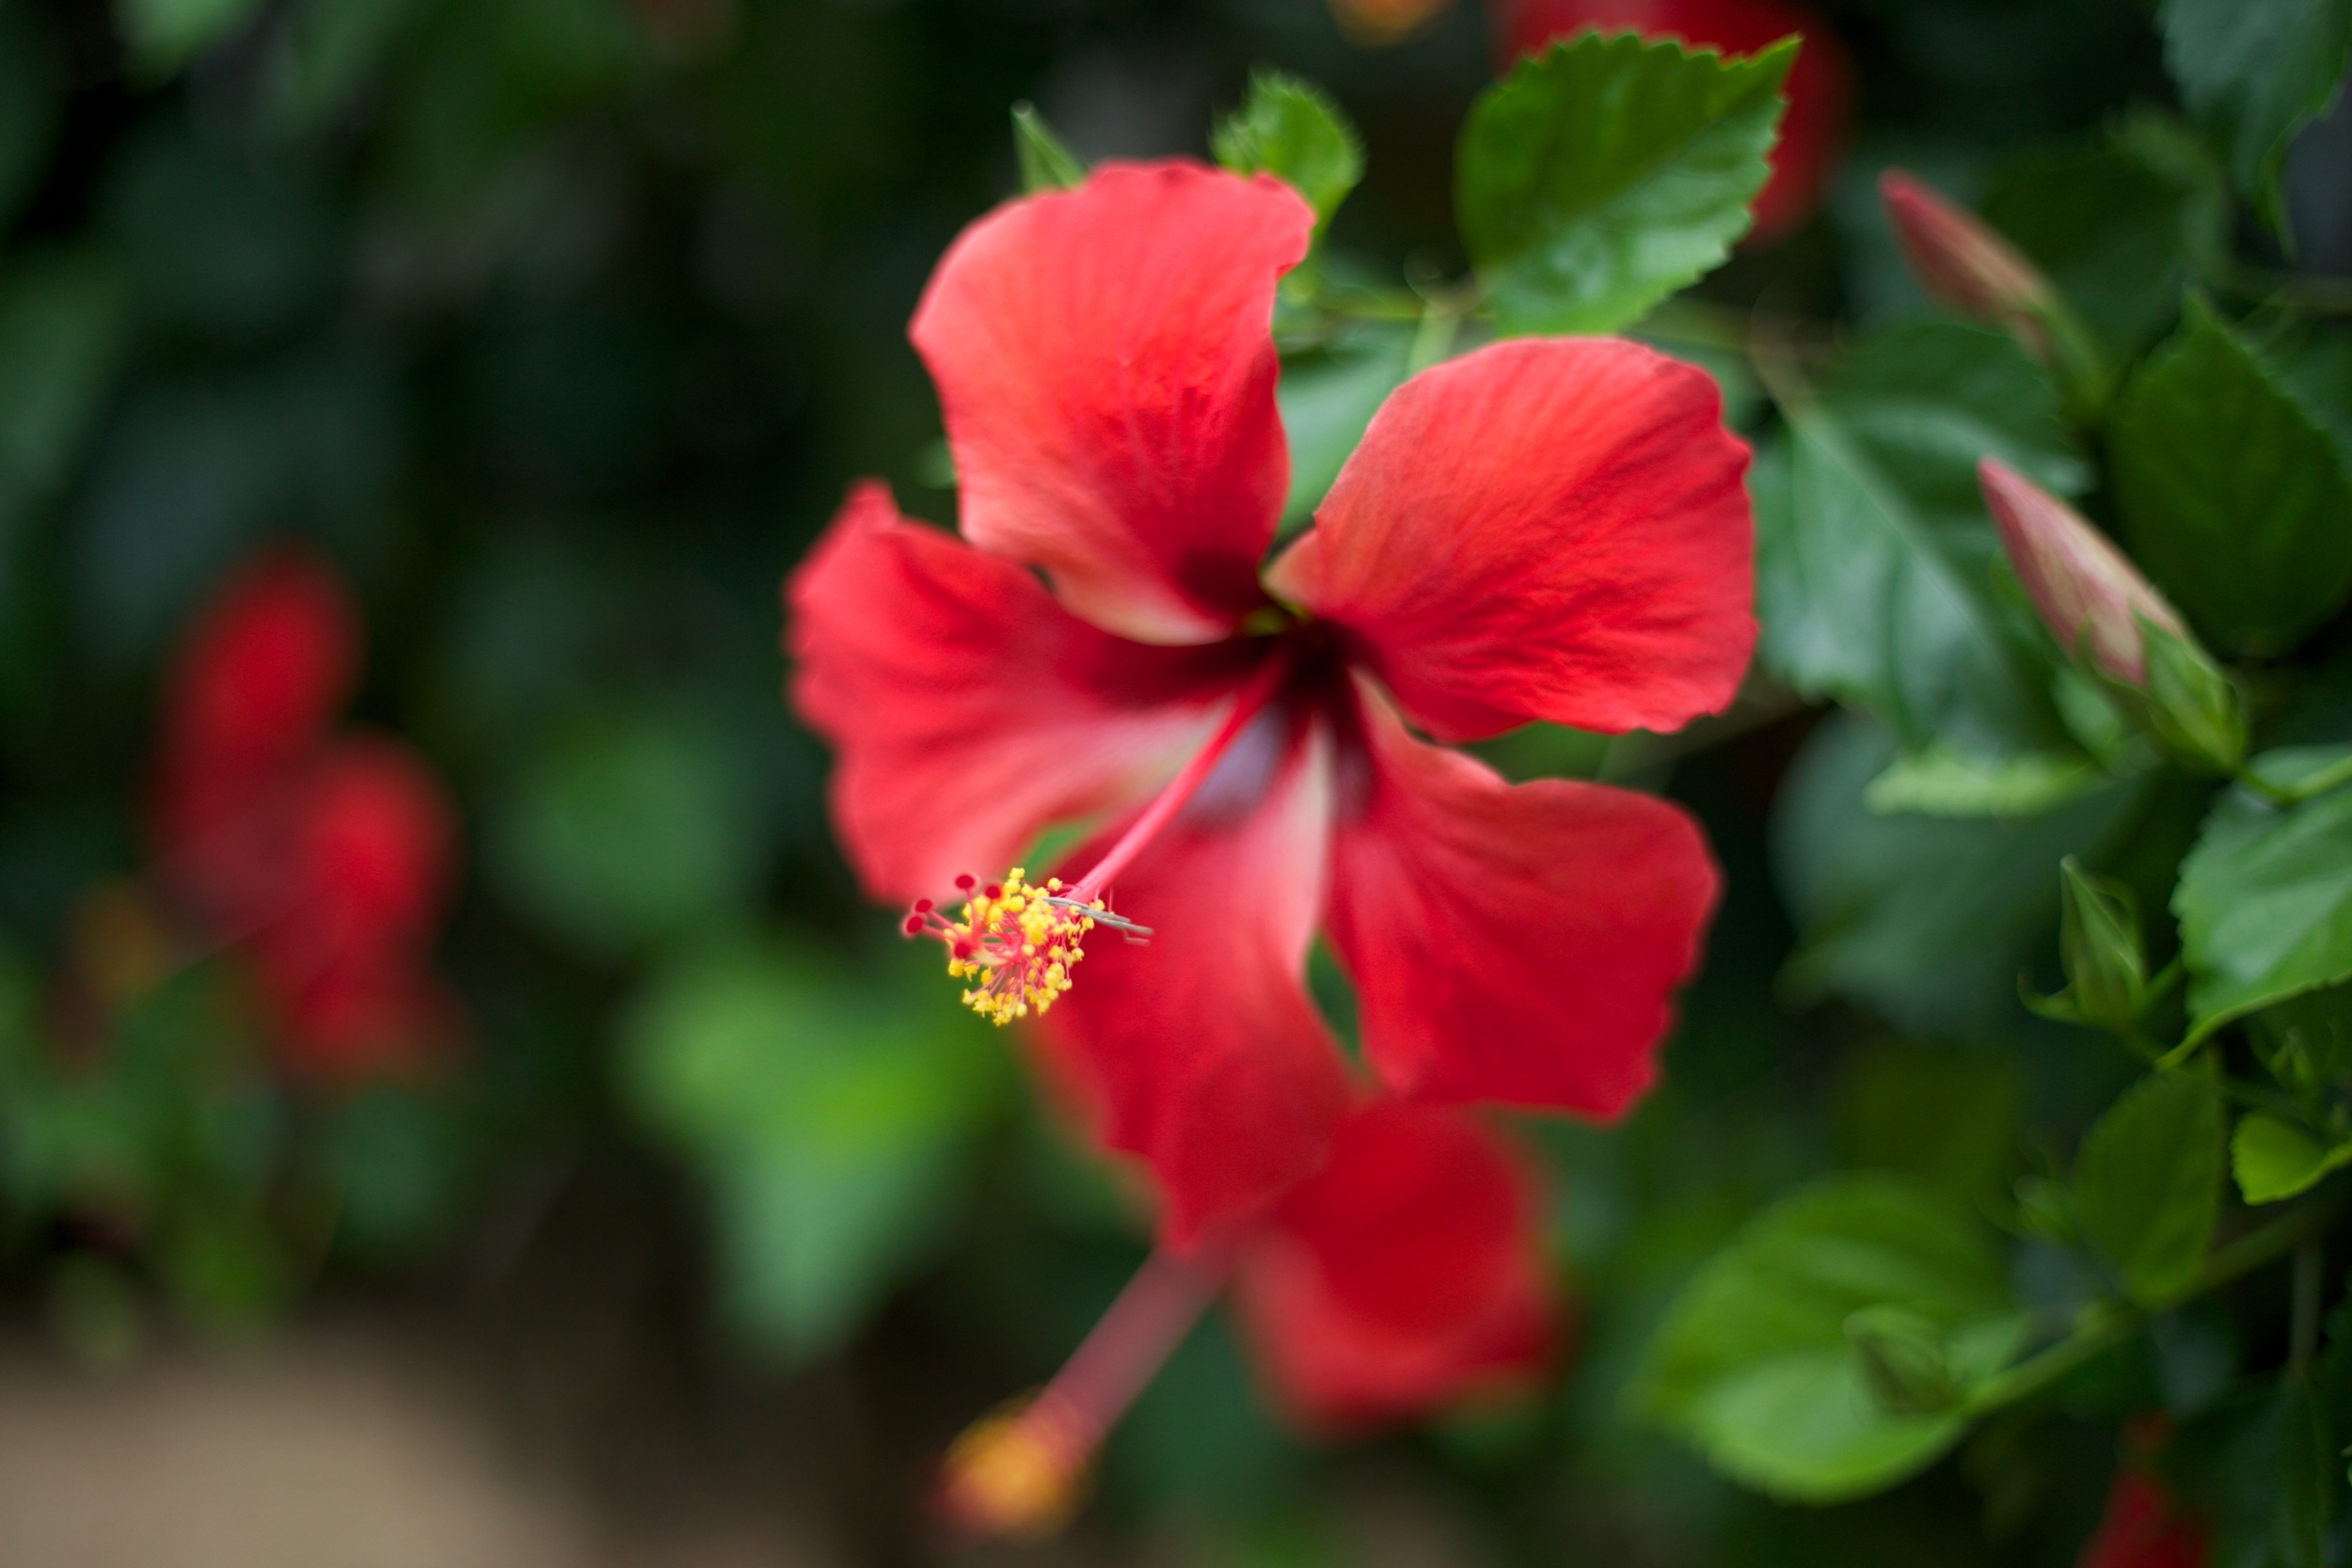 Red hibiscus flower, up close.